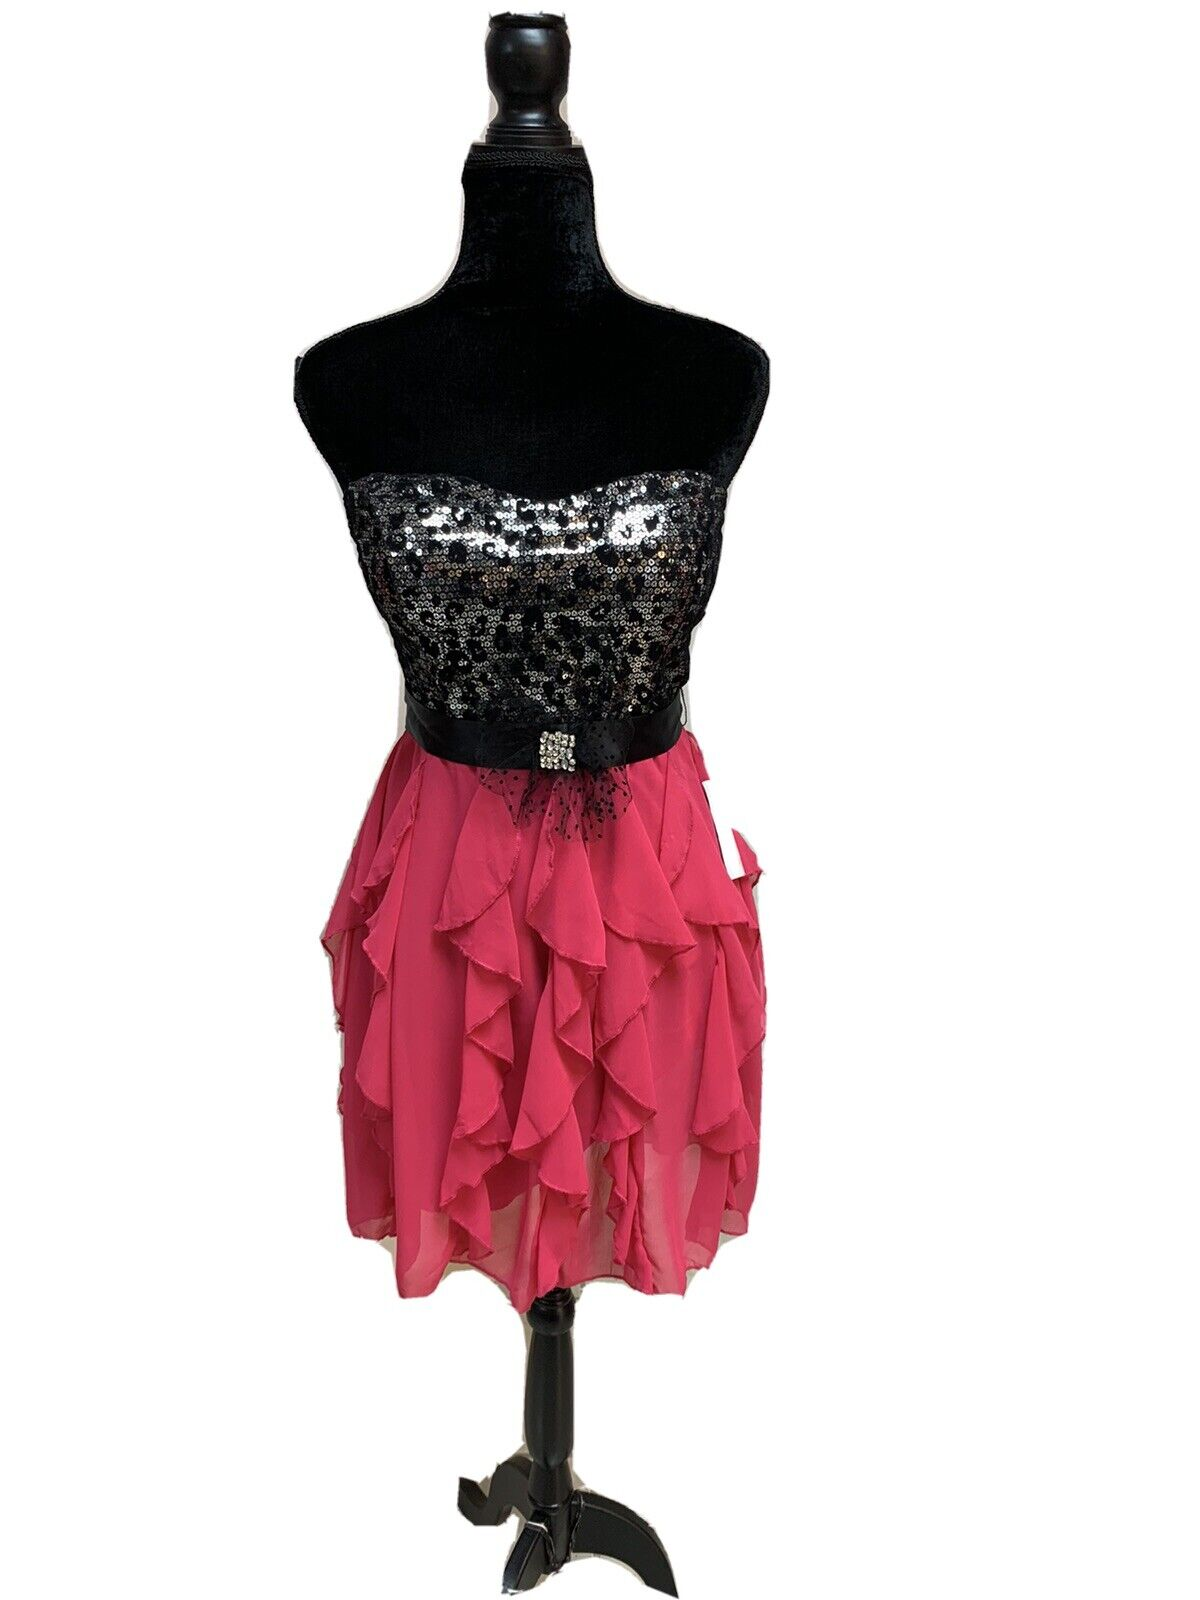 Size 15 Prom Party Homecoming Dance Formal Cocktail Dress NWT